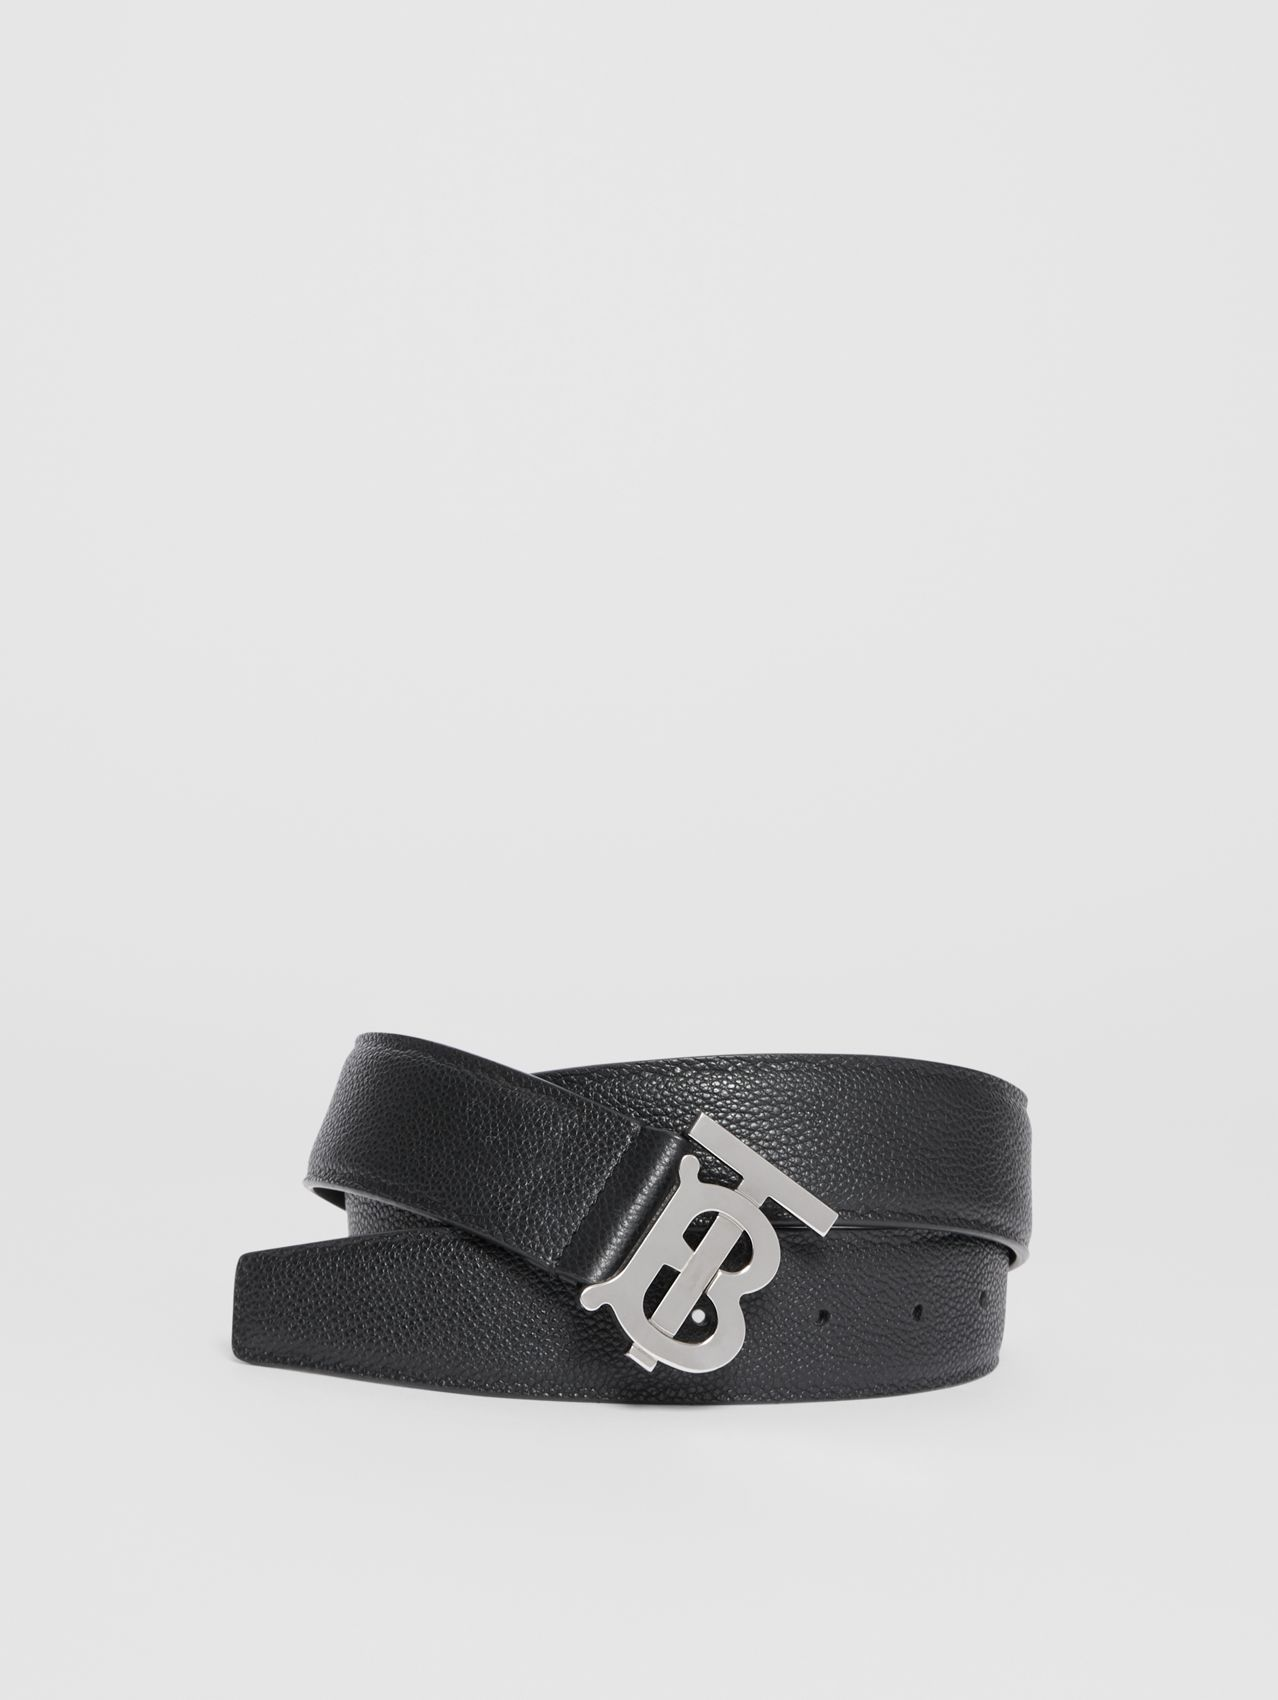 Monogram Motif Grainy Leather Belt (Black)